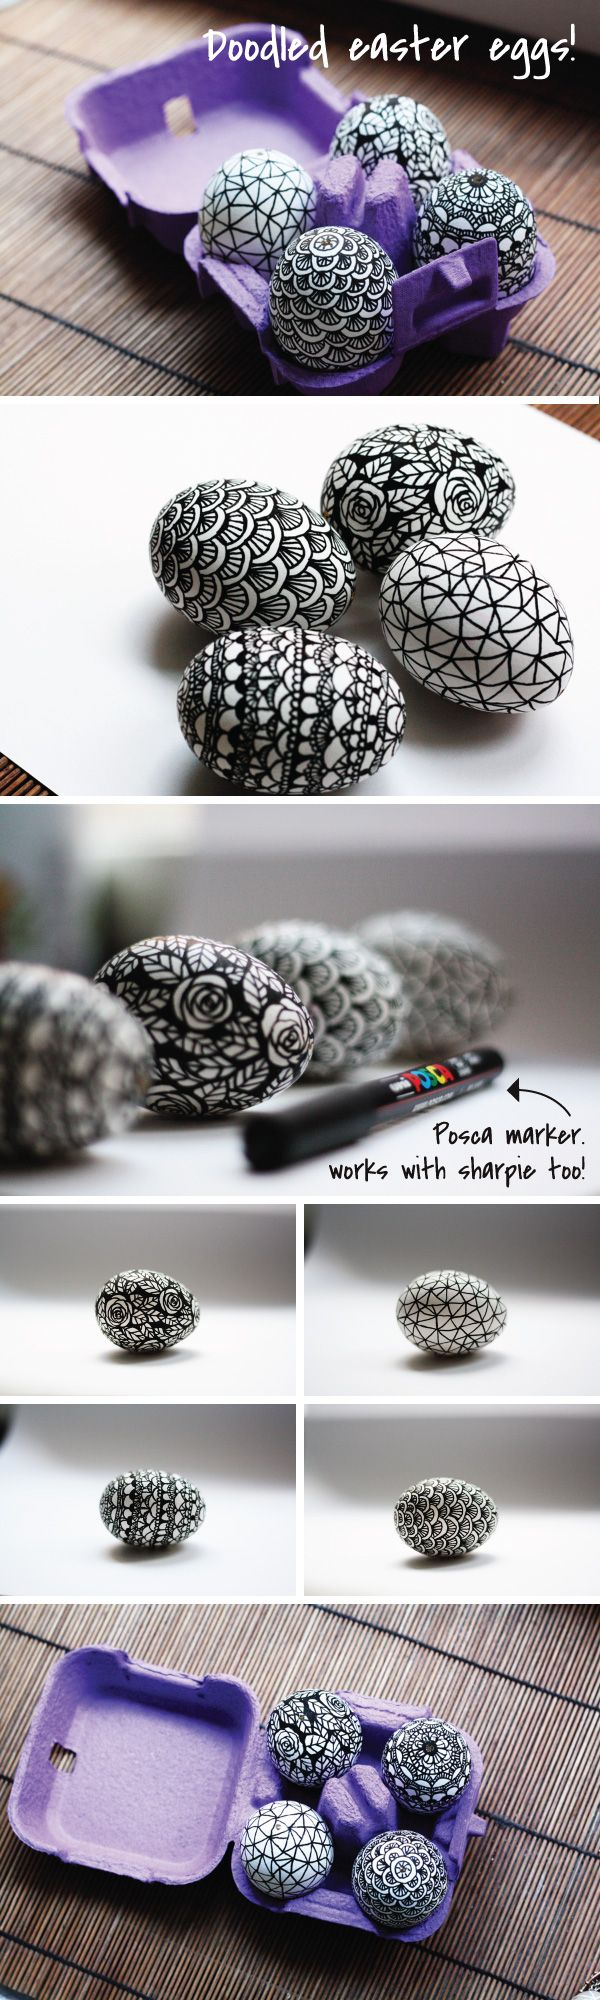 Black & White Doodled Easter Eggs.... also brown and white eggs, if you go to the blog